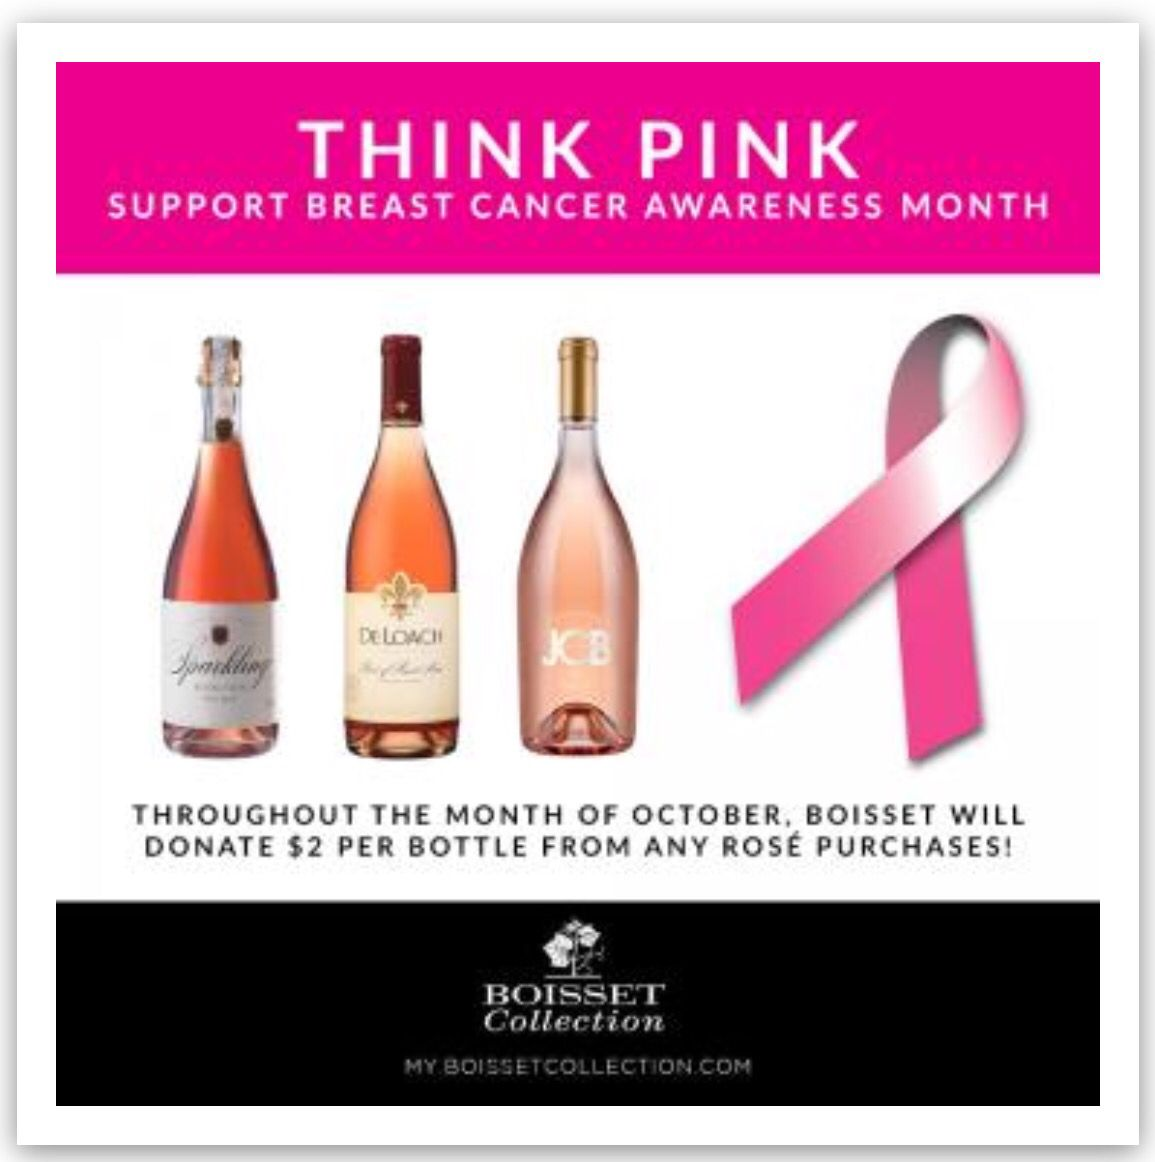 Any rose' purchase in the month of October, a $2 donation is made on behalf of breast cancer research. Sip & support - https://my.boissetcollection.com/sharon.davis/products/wines/Rosé